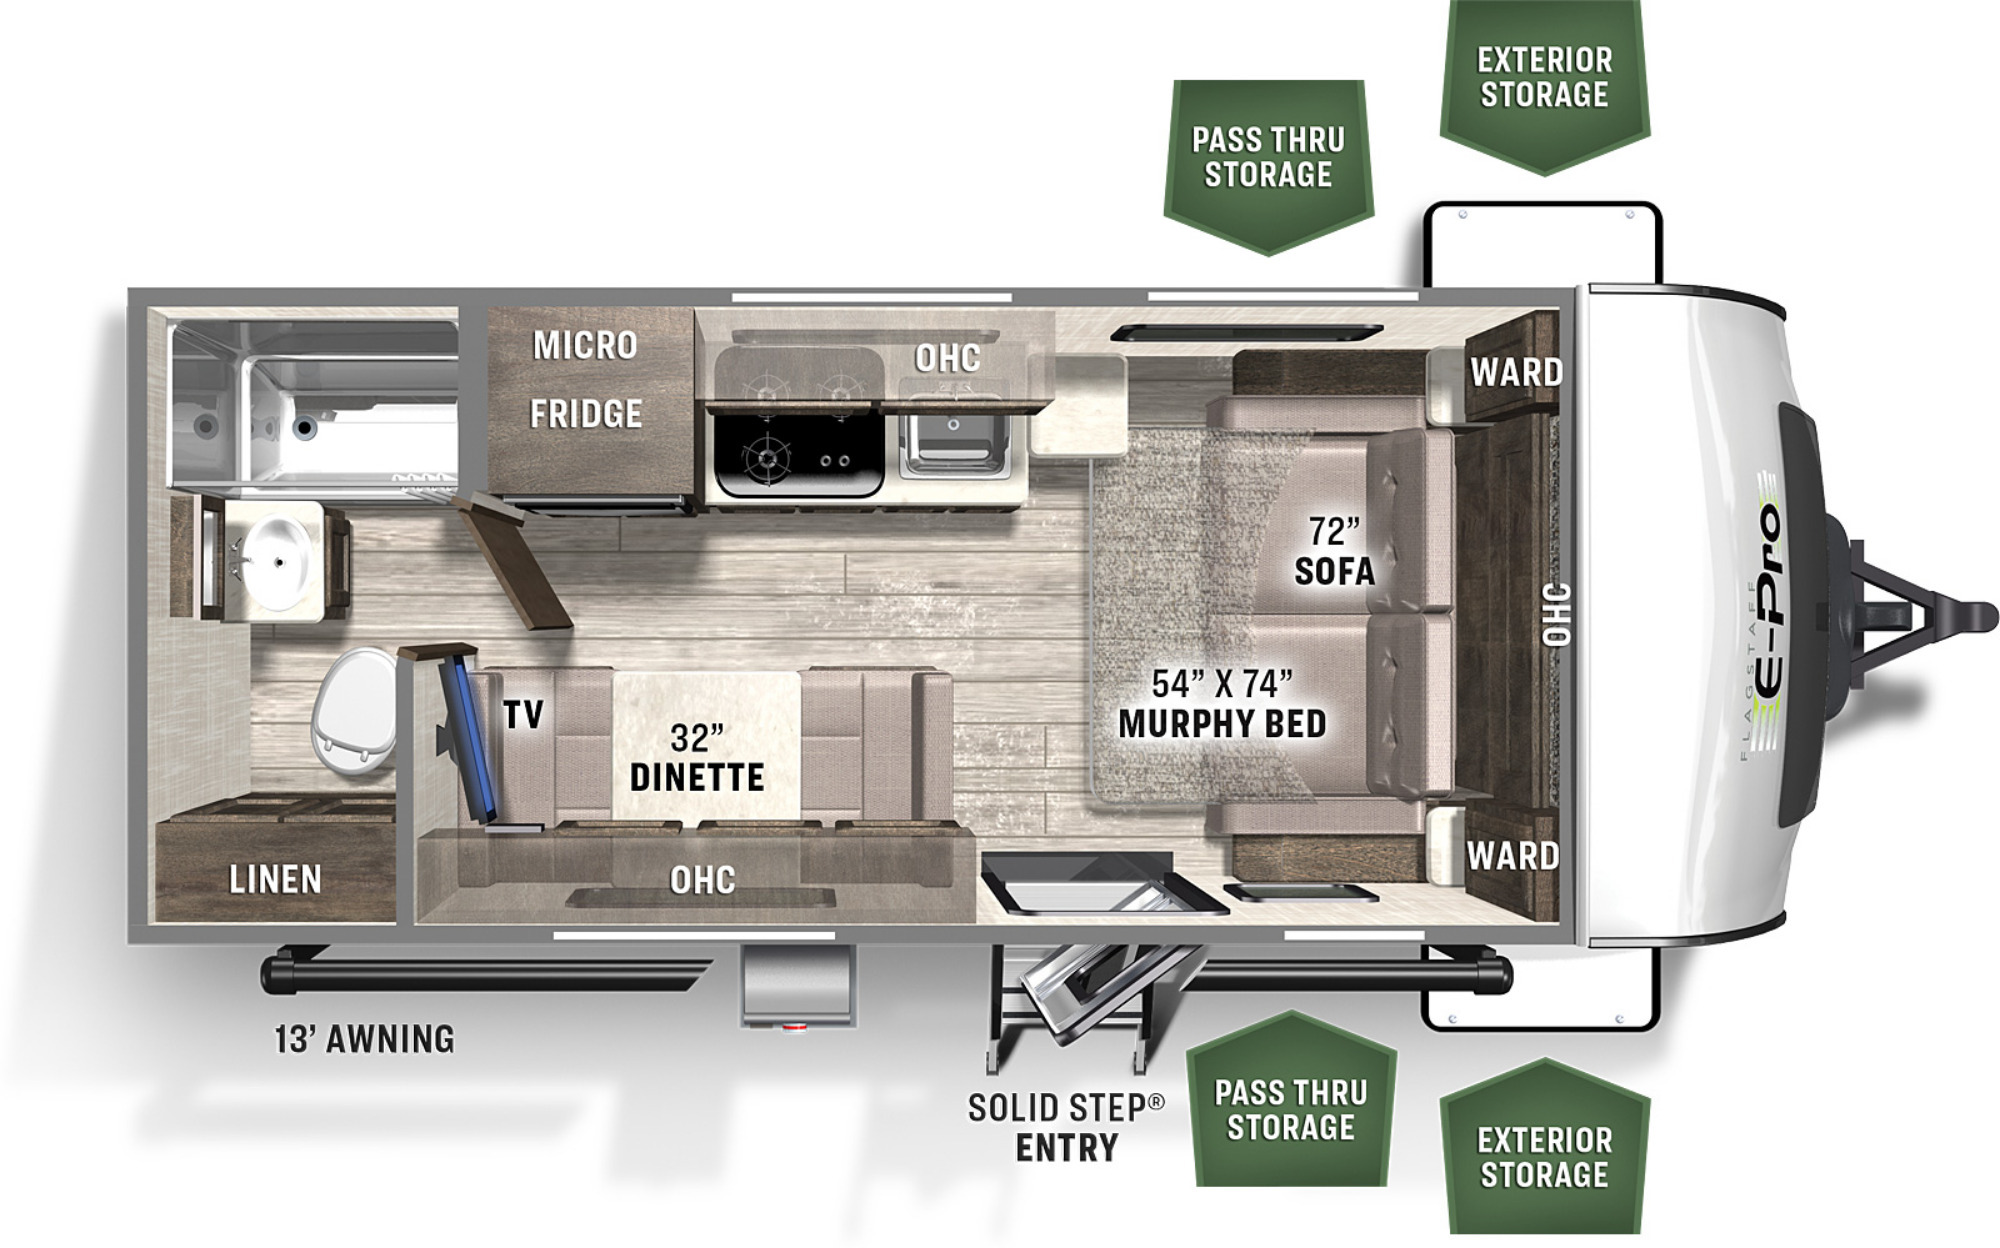 View Floor Plan for 2022 FOREST RIVER FLAGSTAFF E-PRO 19FD